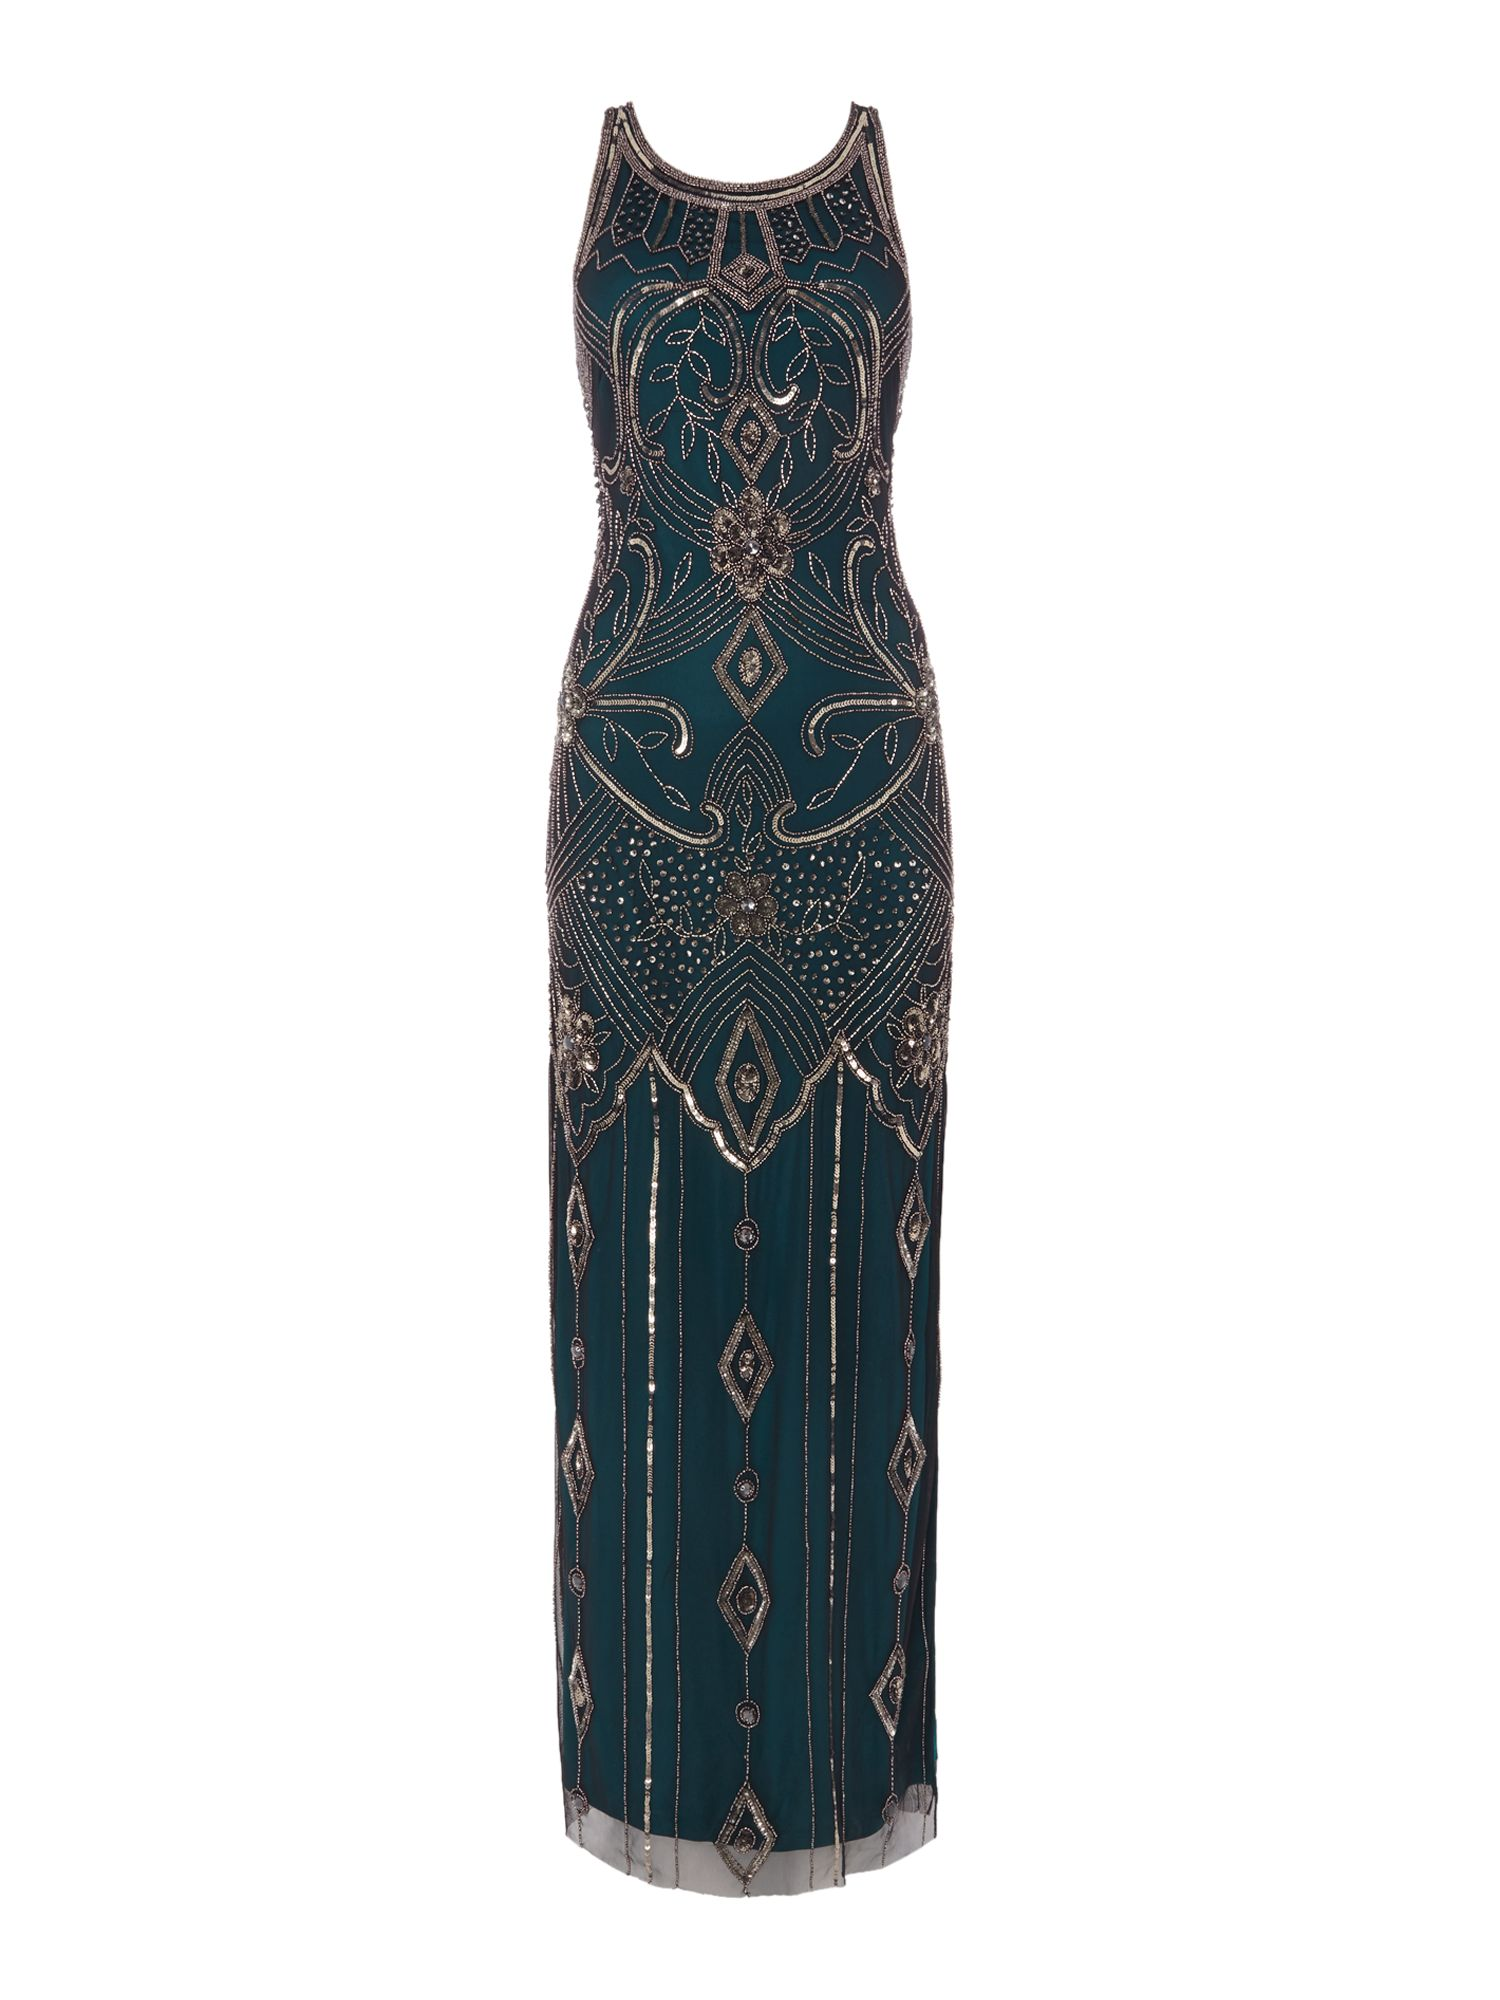 Fun 1920s Flapper Dresses & Quality Flapper Costumes Frock and Frill Sleeveless side slit embellished gown Emerald £95.00 AT vintagedancer.com